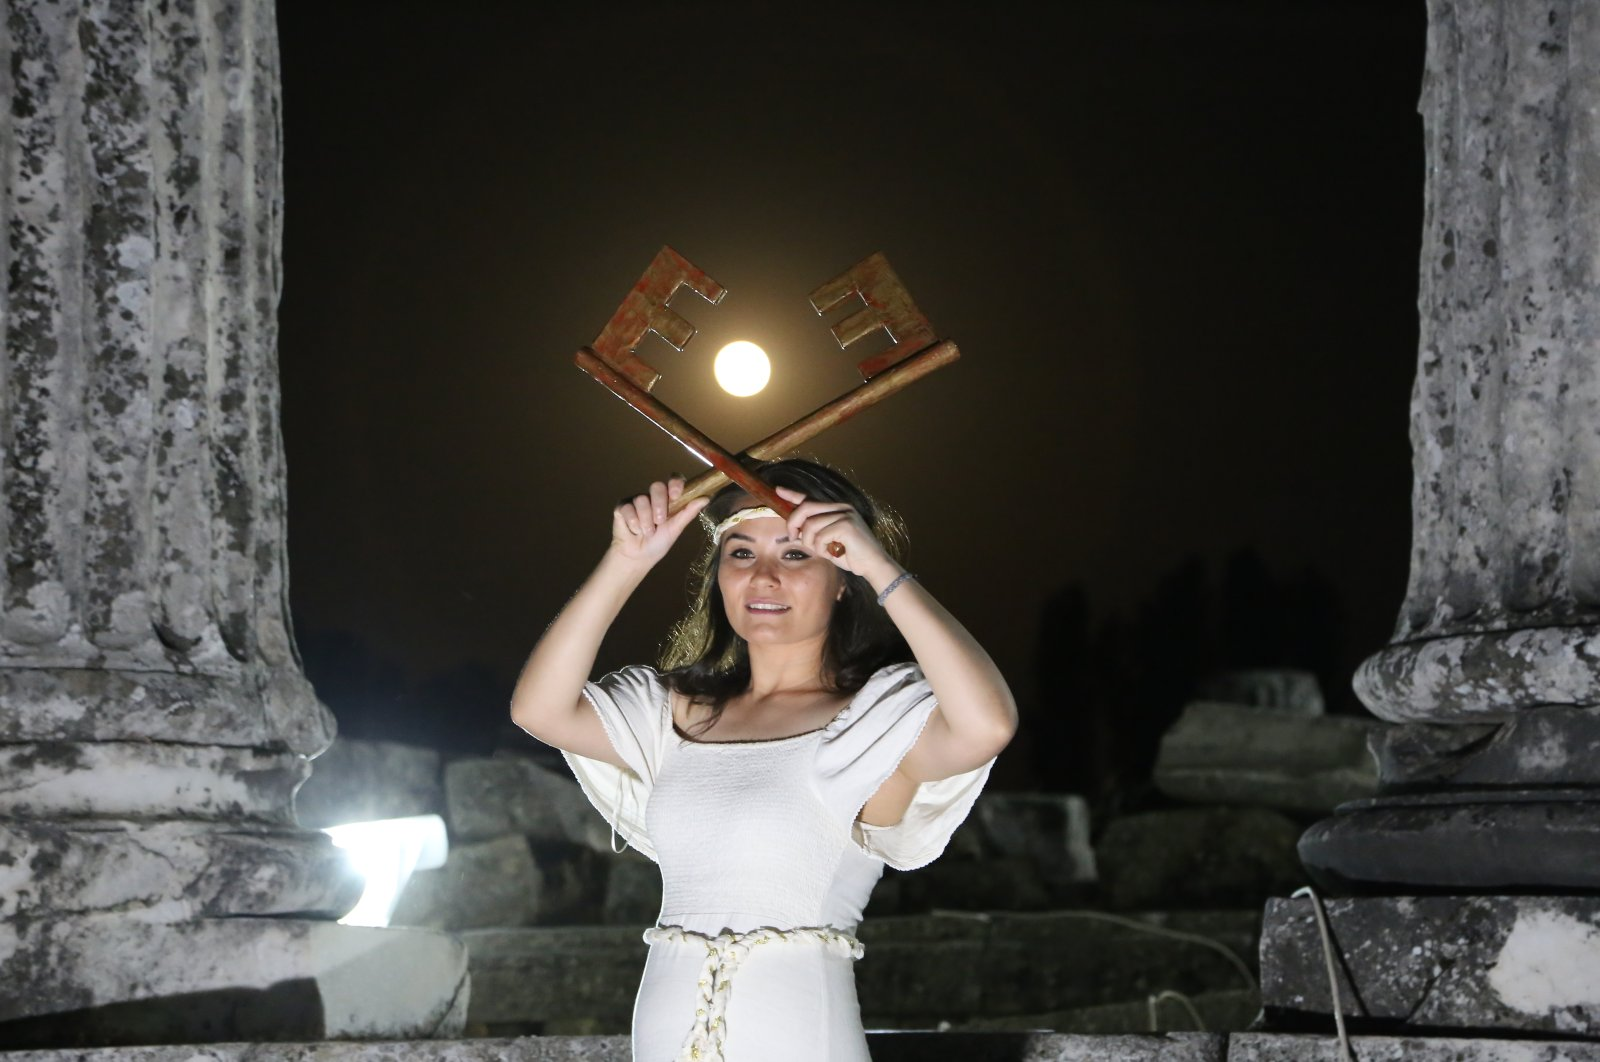 The actress portraying the goddess Hecate hold keys in front of the super moon at the Sanctuary of Hecate in Lagina, Muğla, southwestern Turkey, May 27, 2021. (AA Photo)